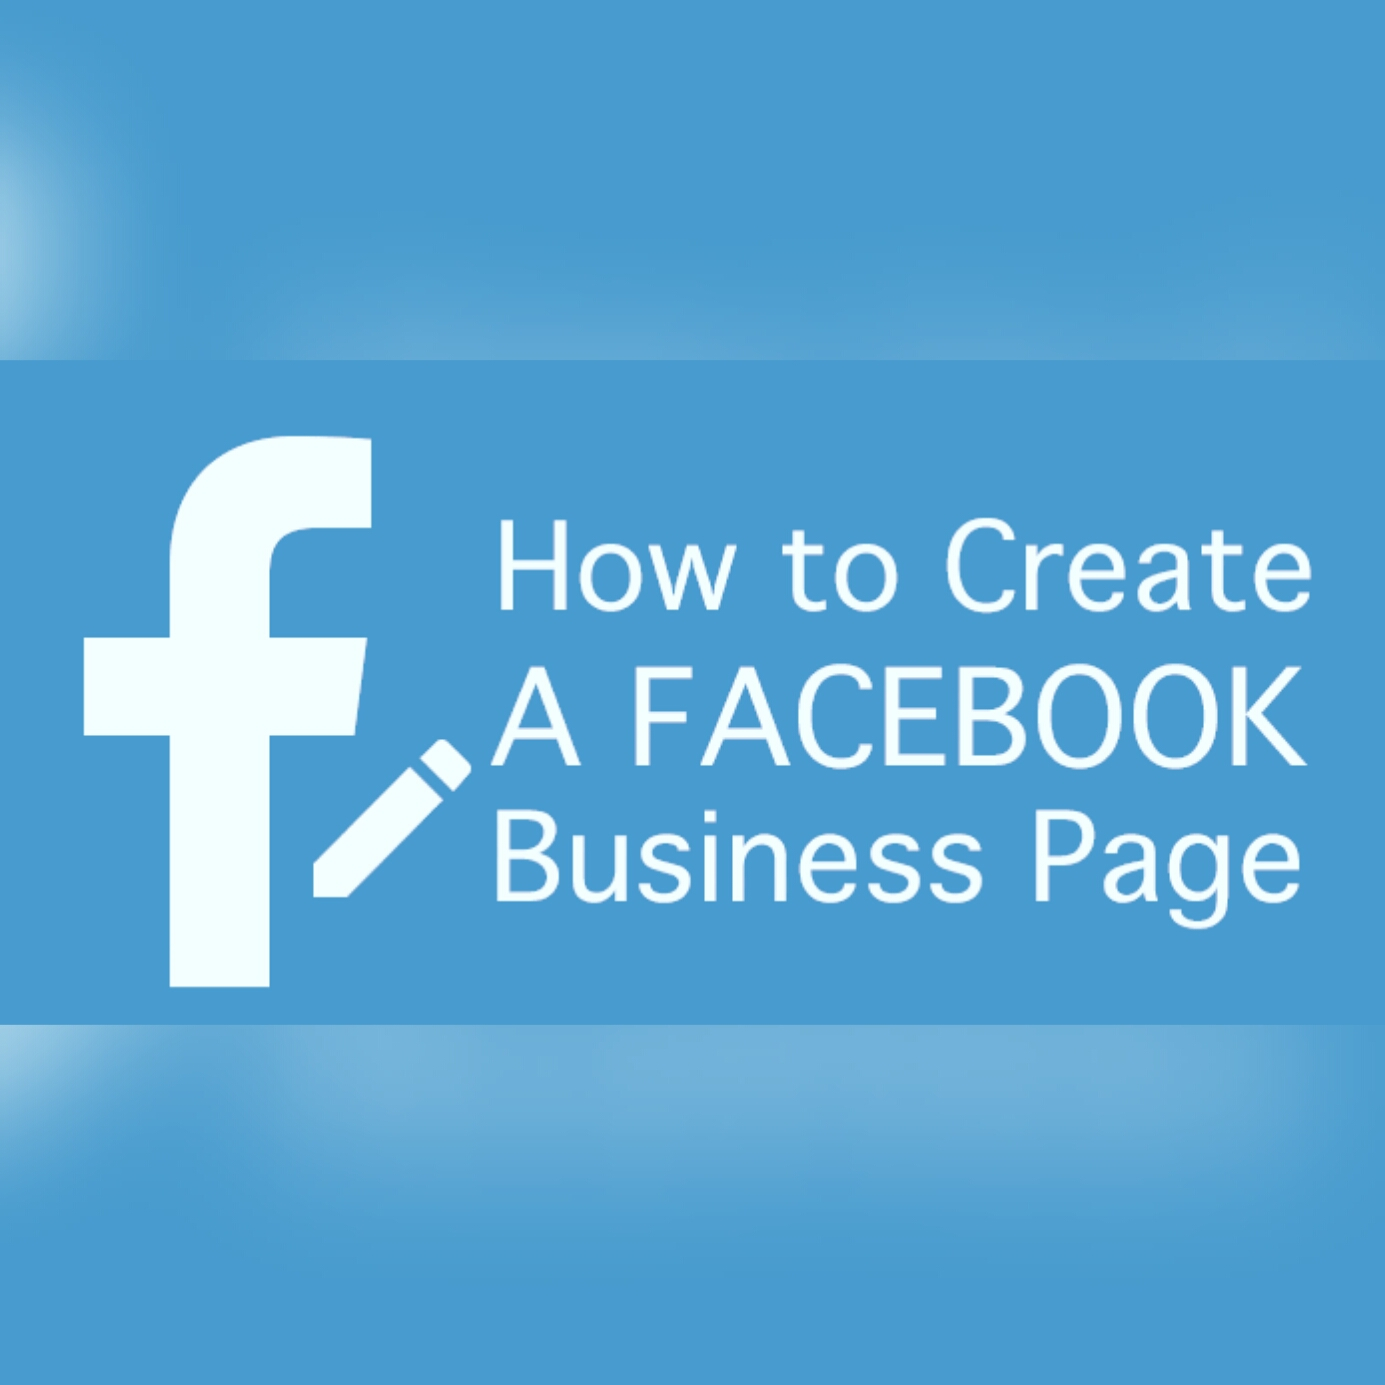 Creat a business Facebook page